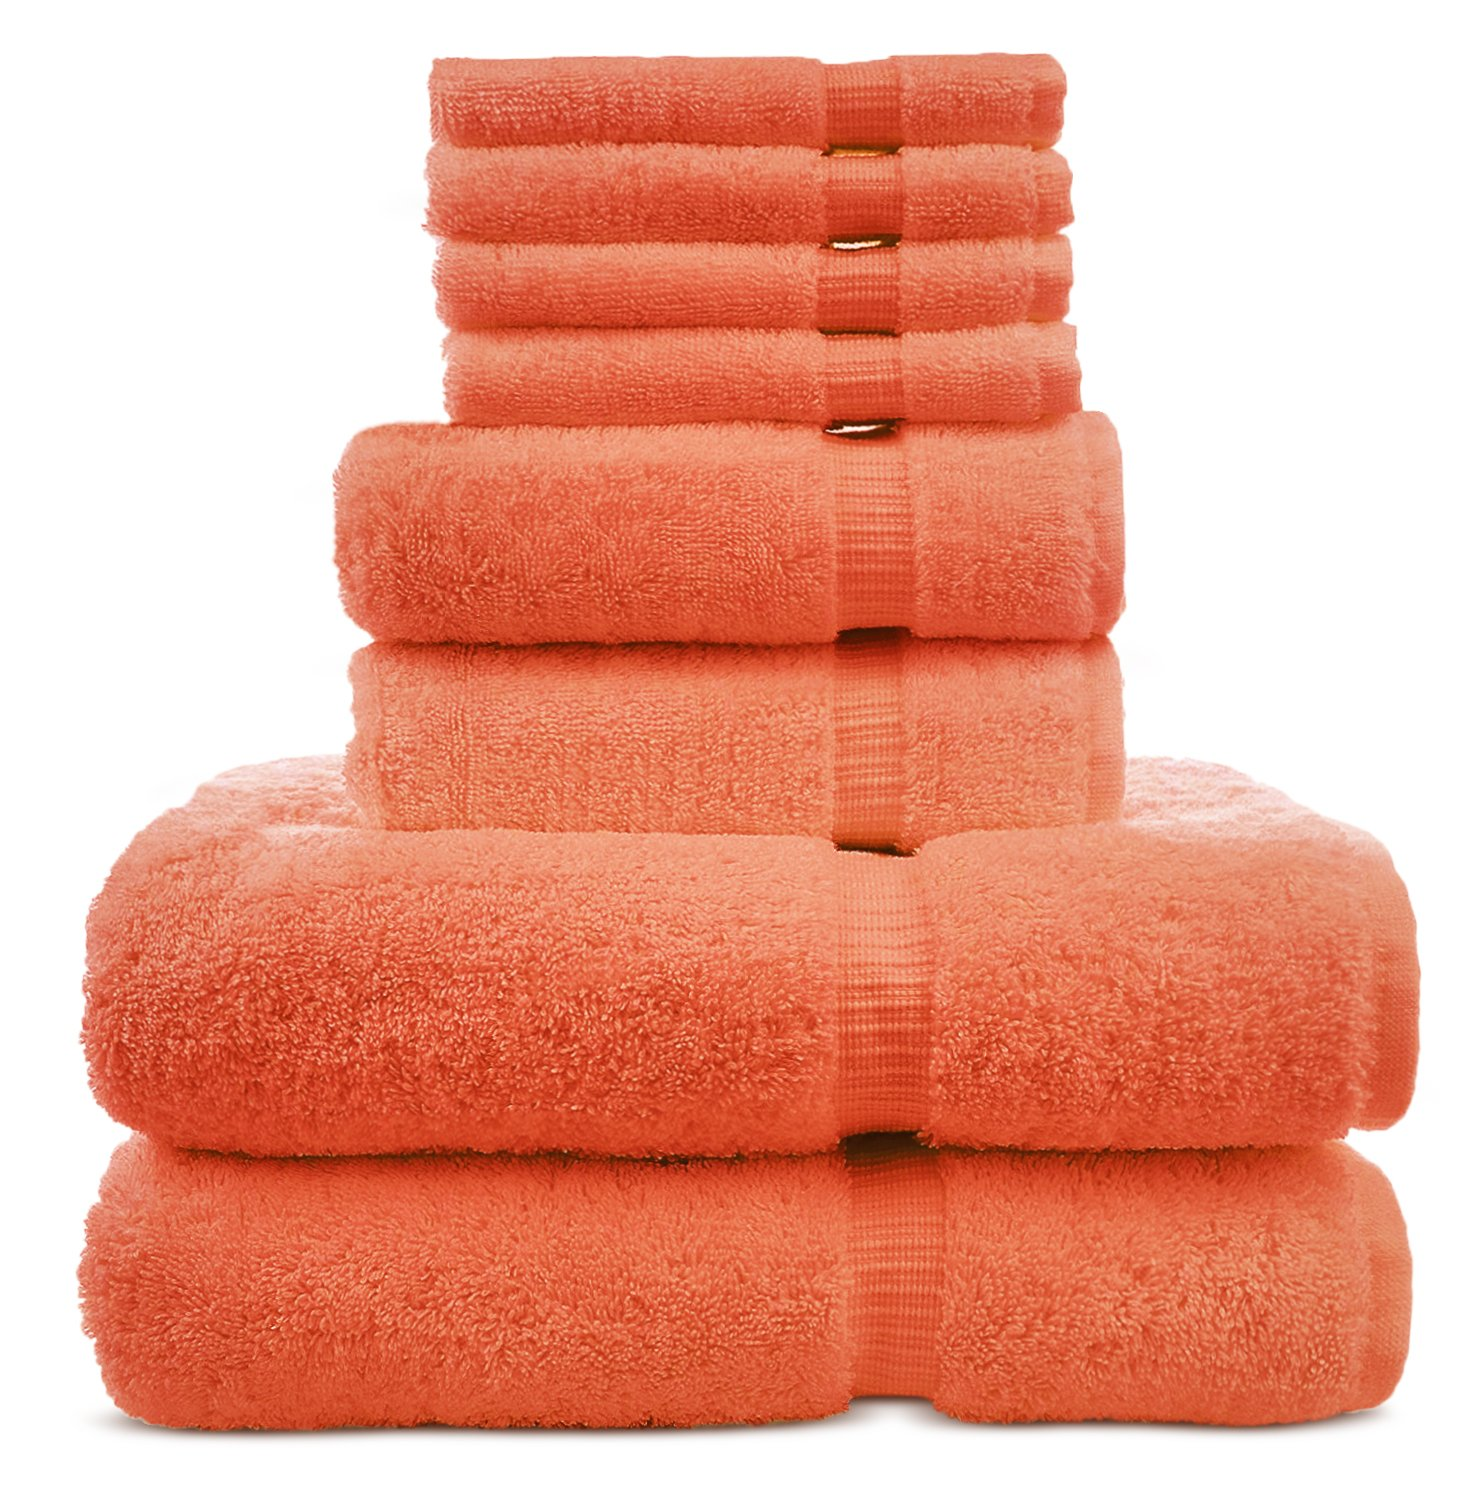 8 Piece Turkish Cotton Towel Set